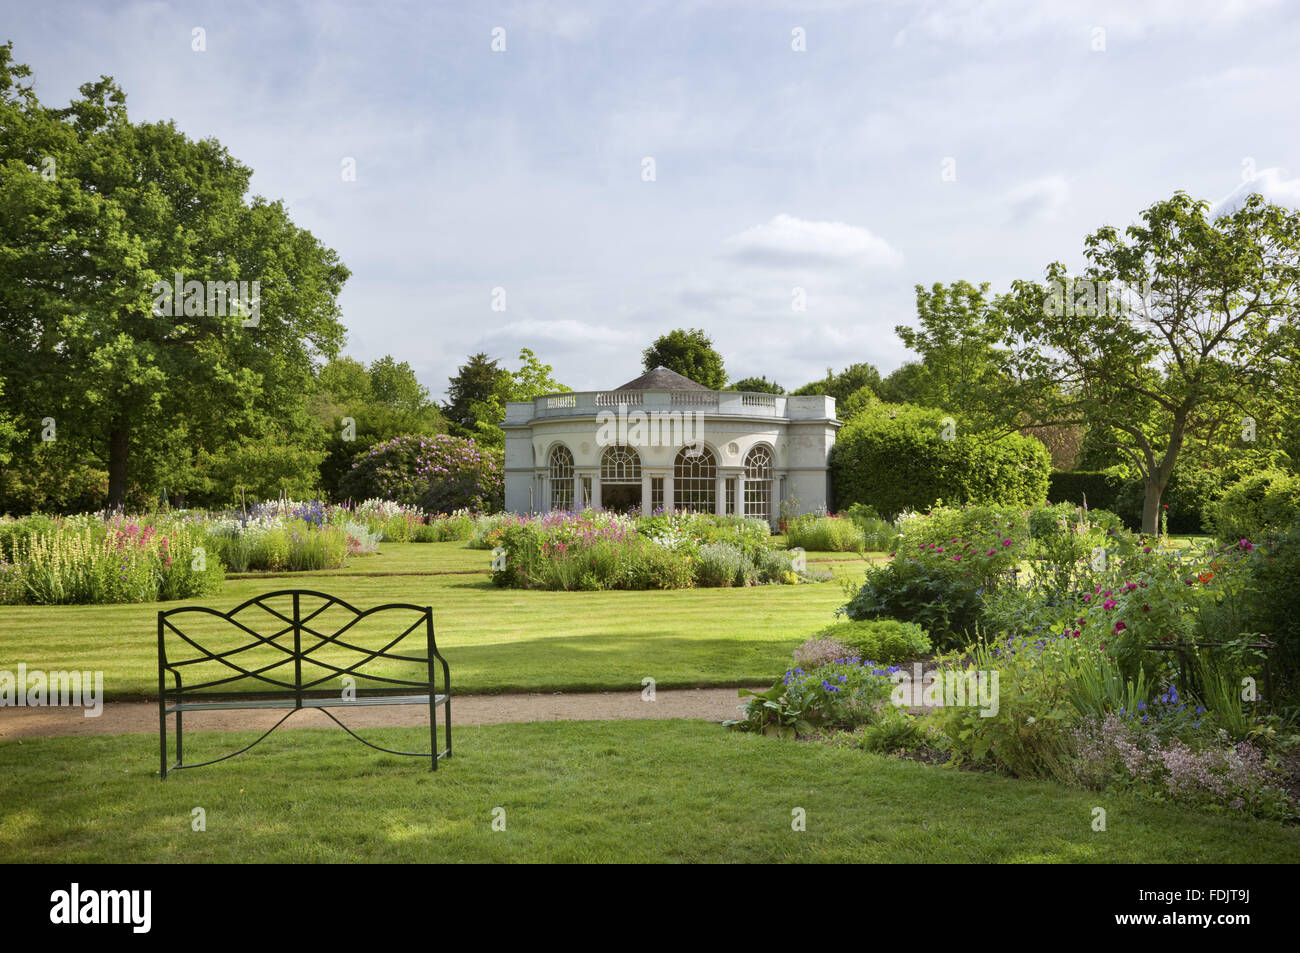 The Garden House, built in 1780 by Robert Adam, in the Pleasure Grounds at Osterley, Middlesex. The building has a semicircular front and Ionic pilasters. Stock Photo